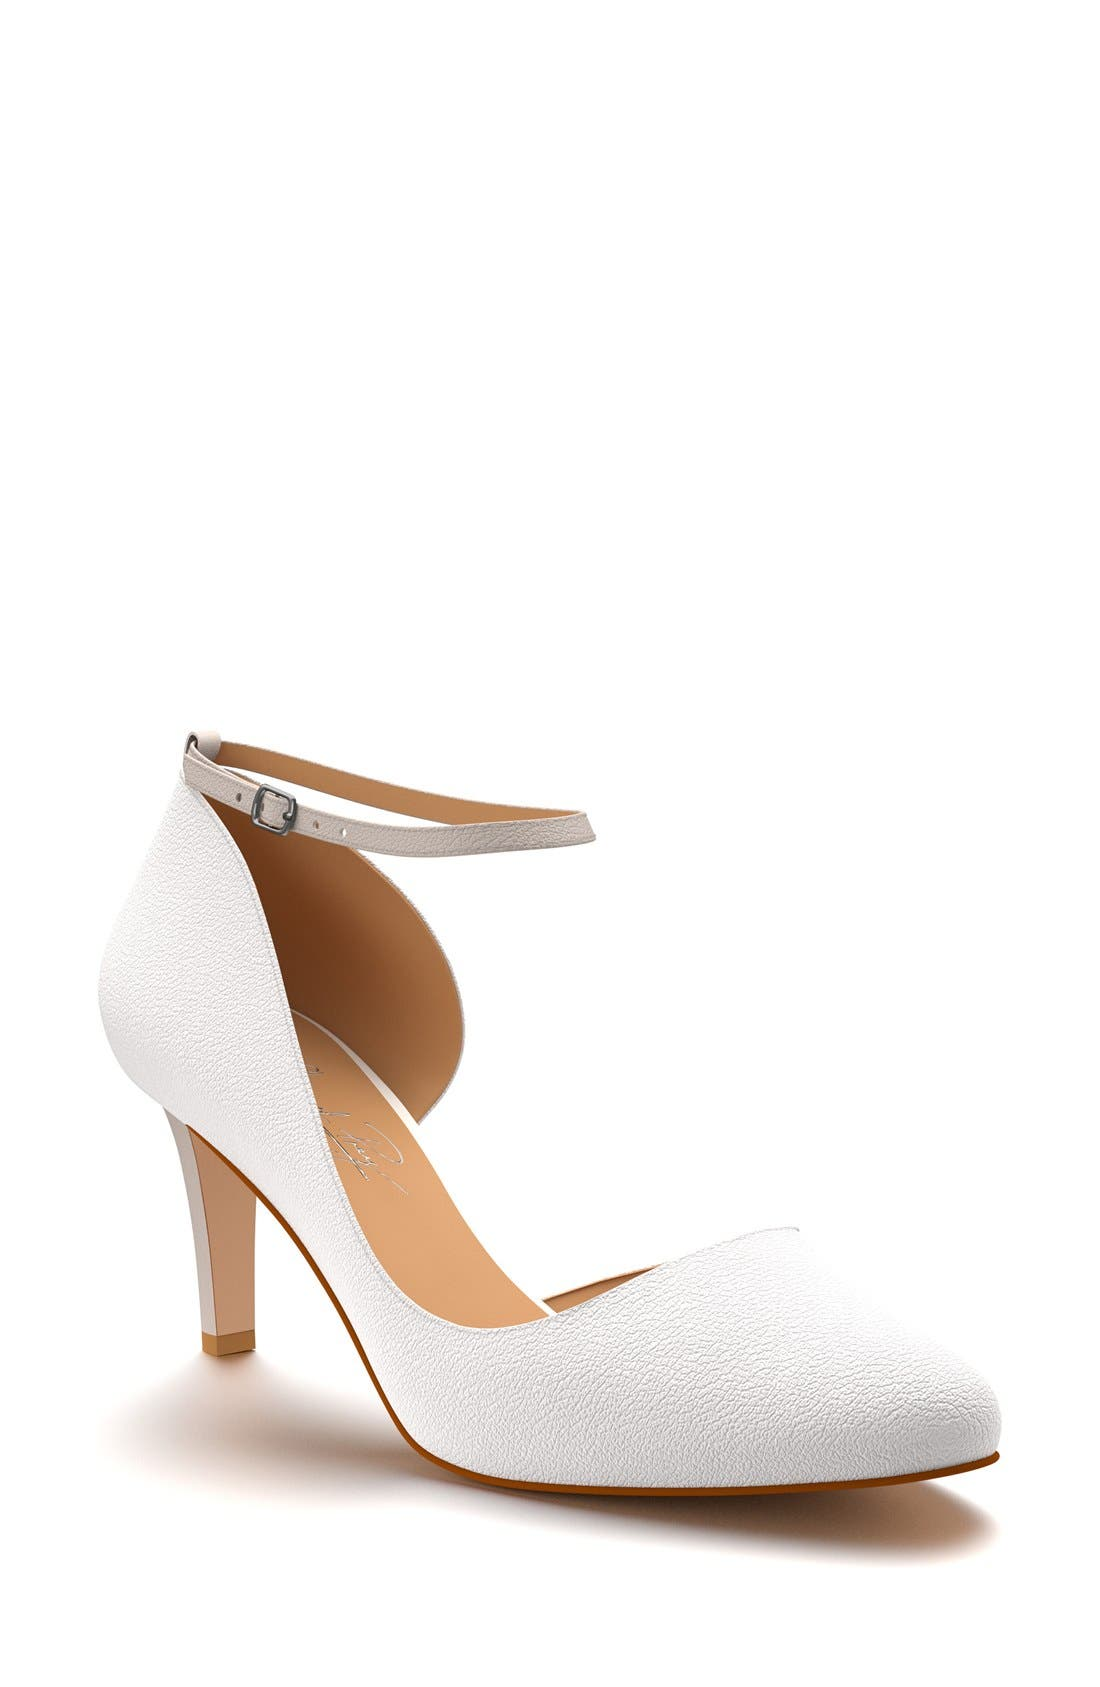 Main Image - Shoes of Prey Half d'Orsay Ankle Strap Pump (Women)